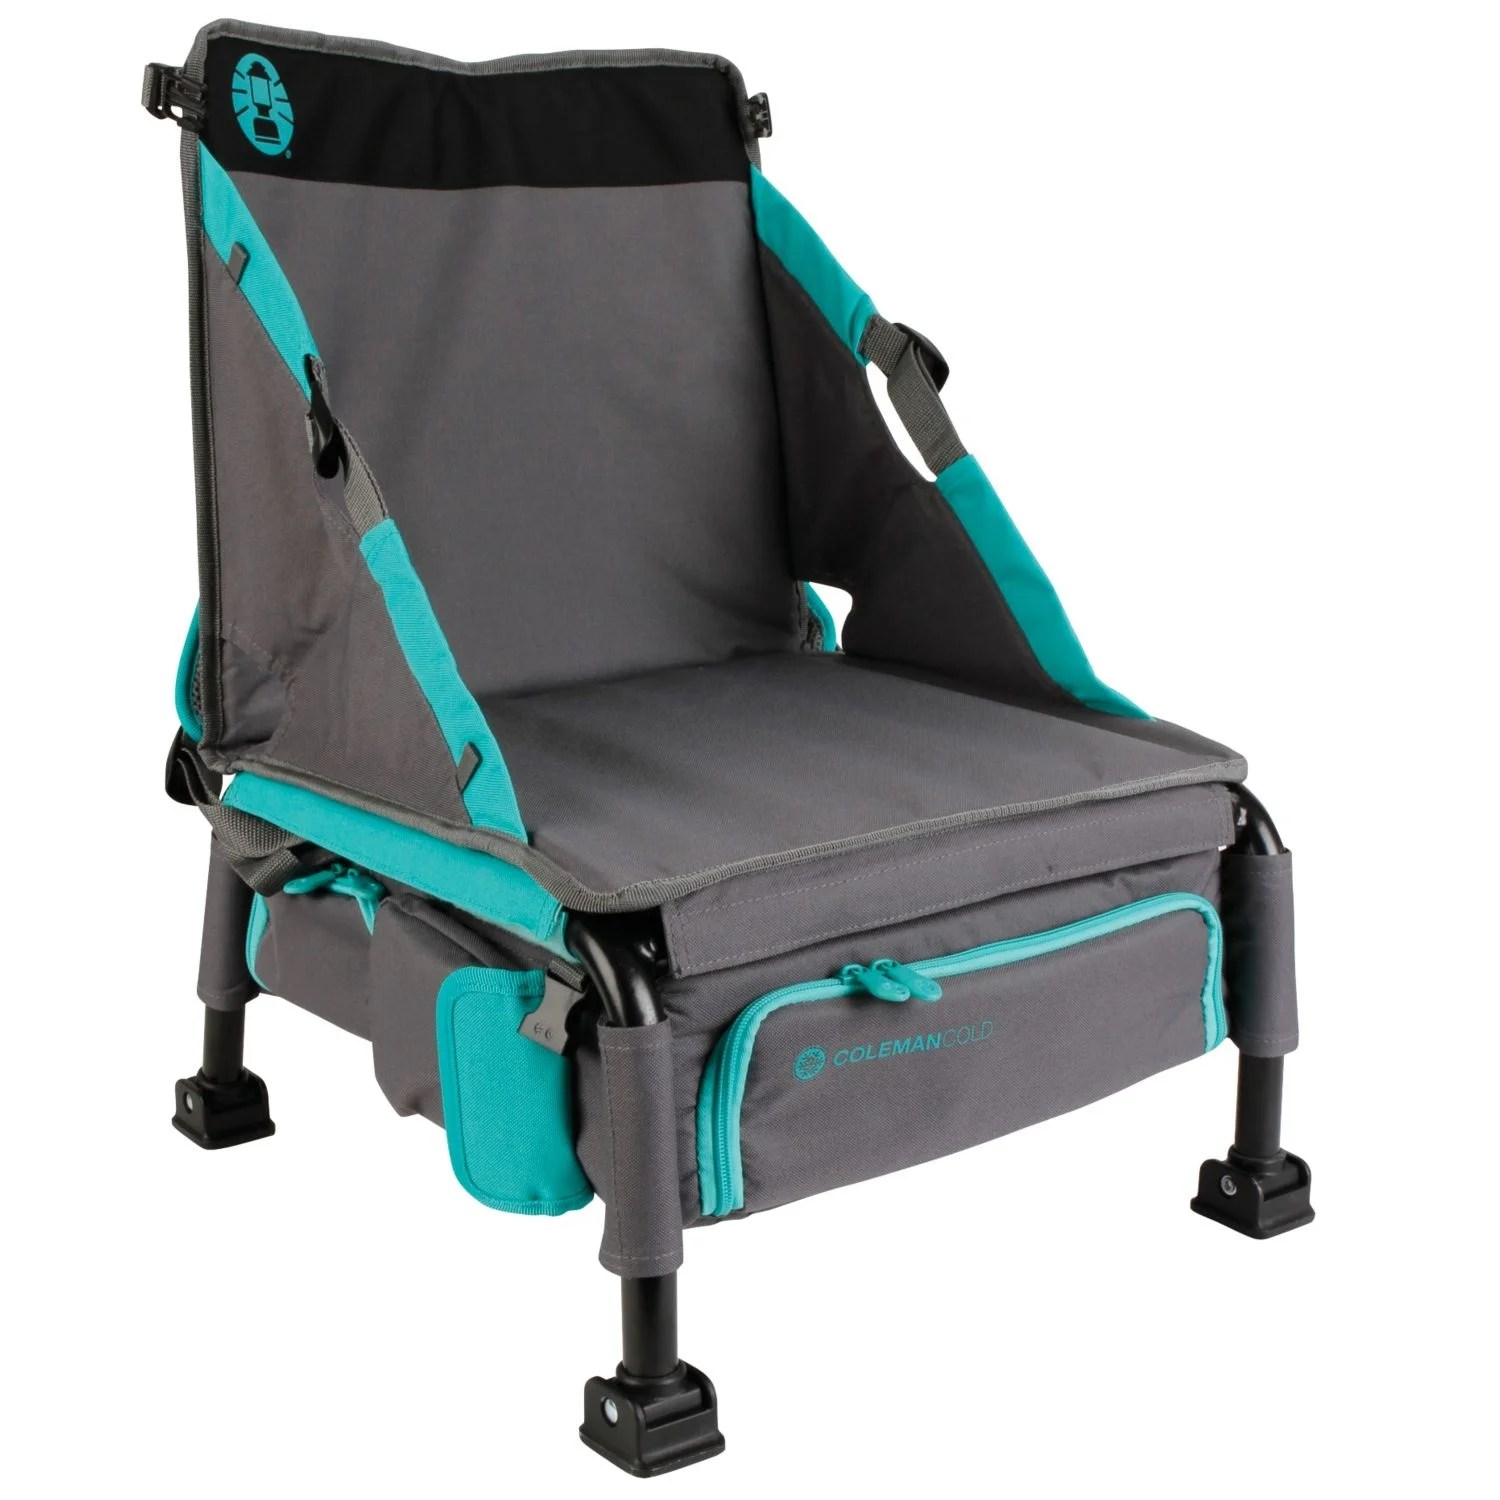 coleman max camping chair folding chairs for sale cheap treklite plus coolerpack with cushion wayfair